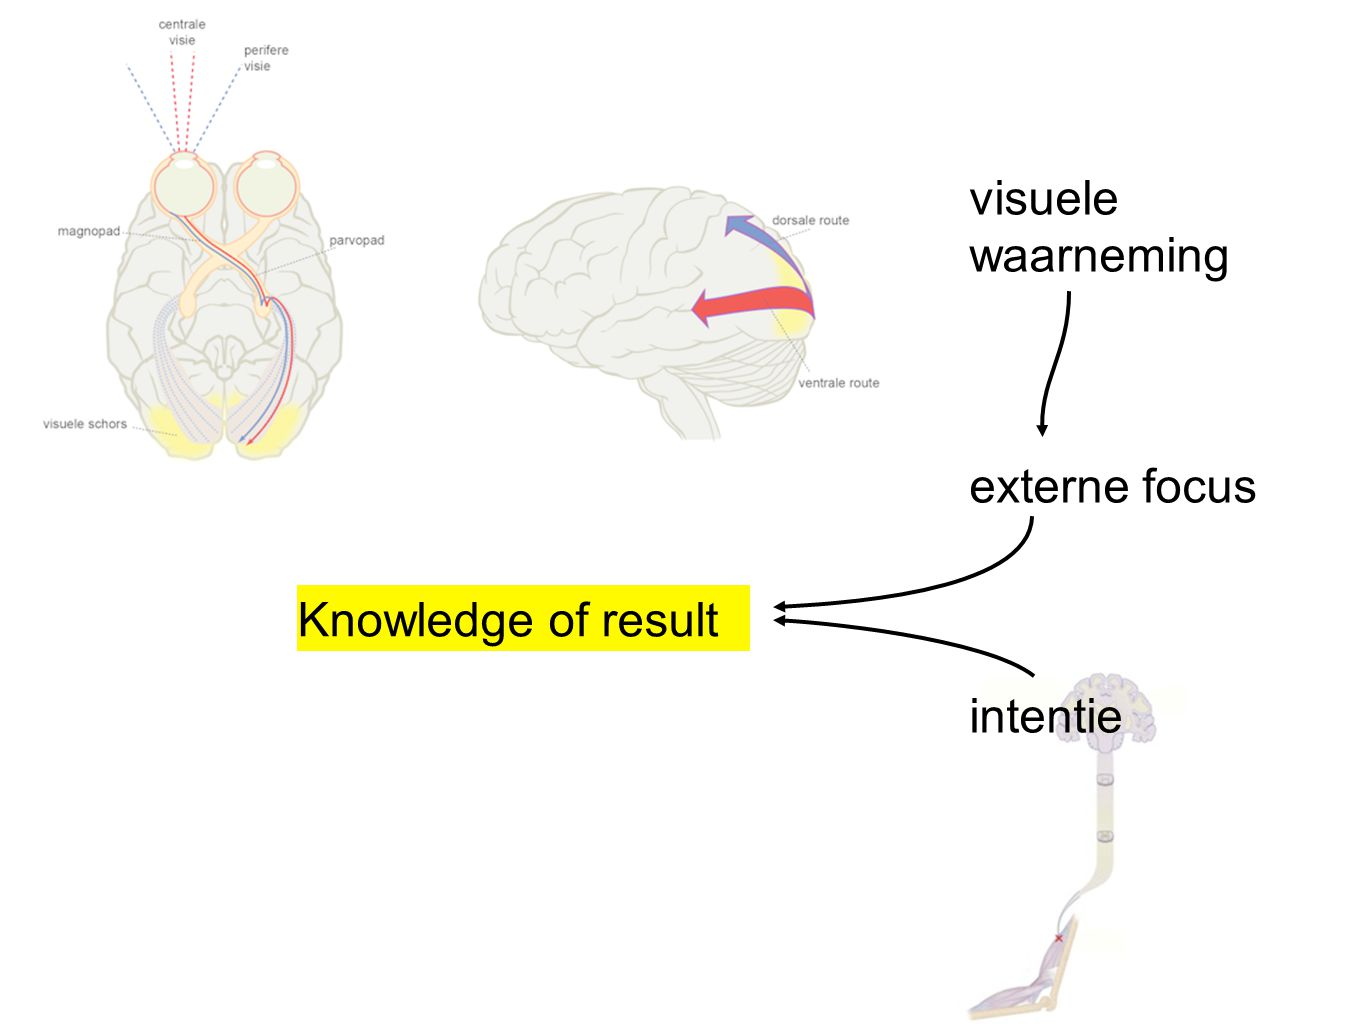 visuele waarneming externe focus intentie Knowledge of result